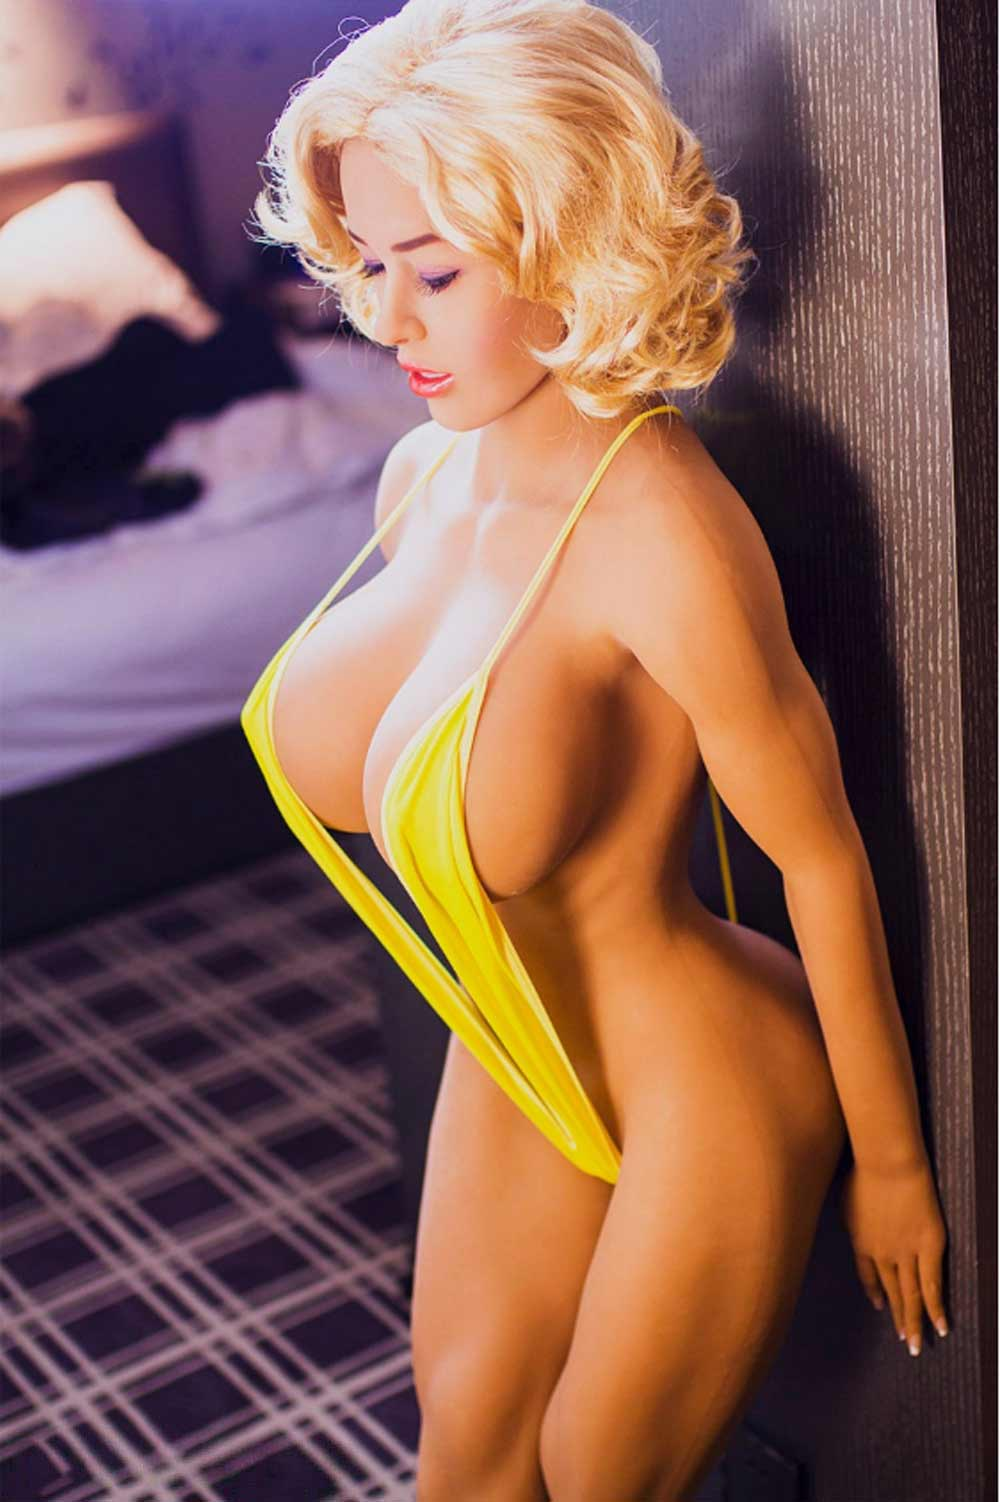 Sex-doll-leaning-against-the-wall